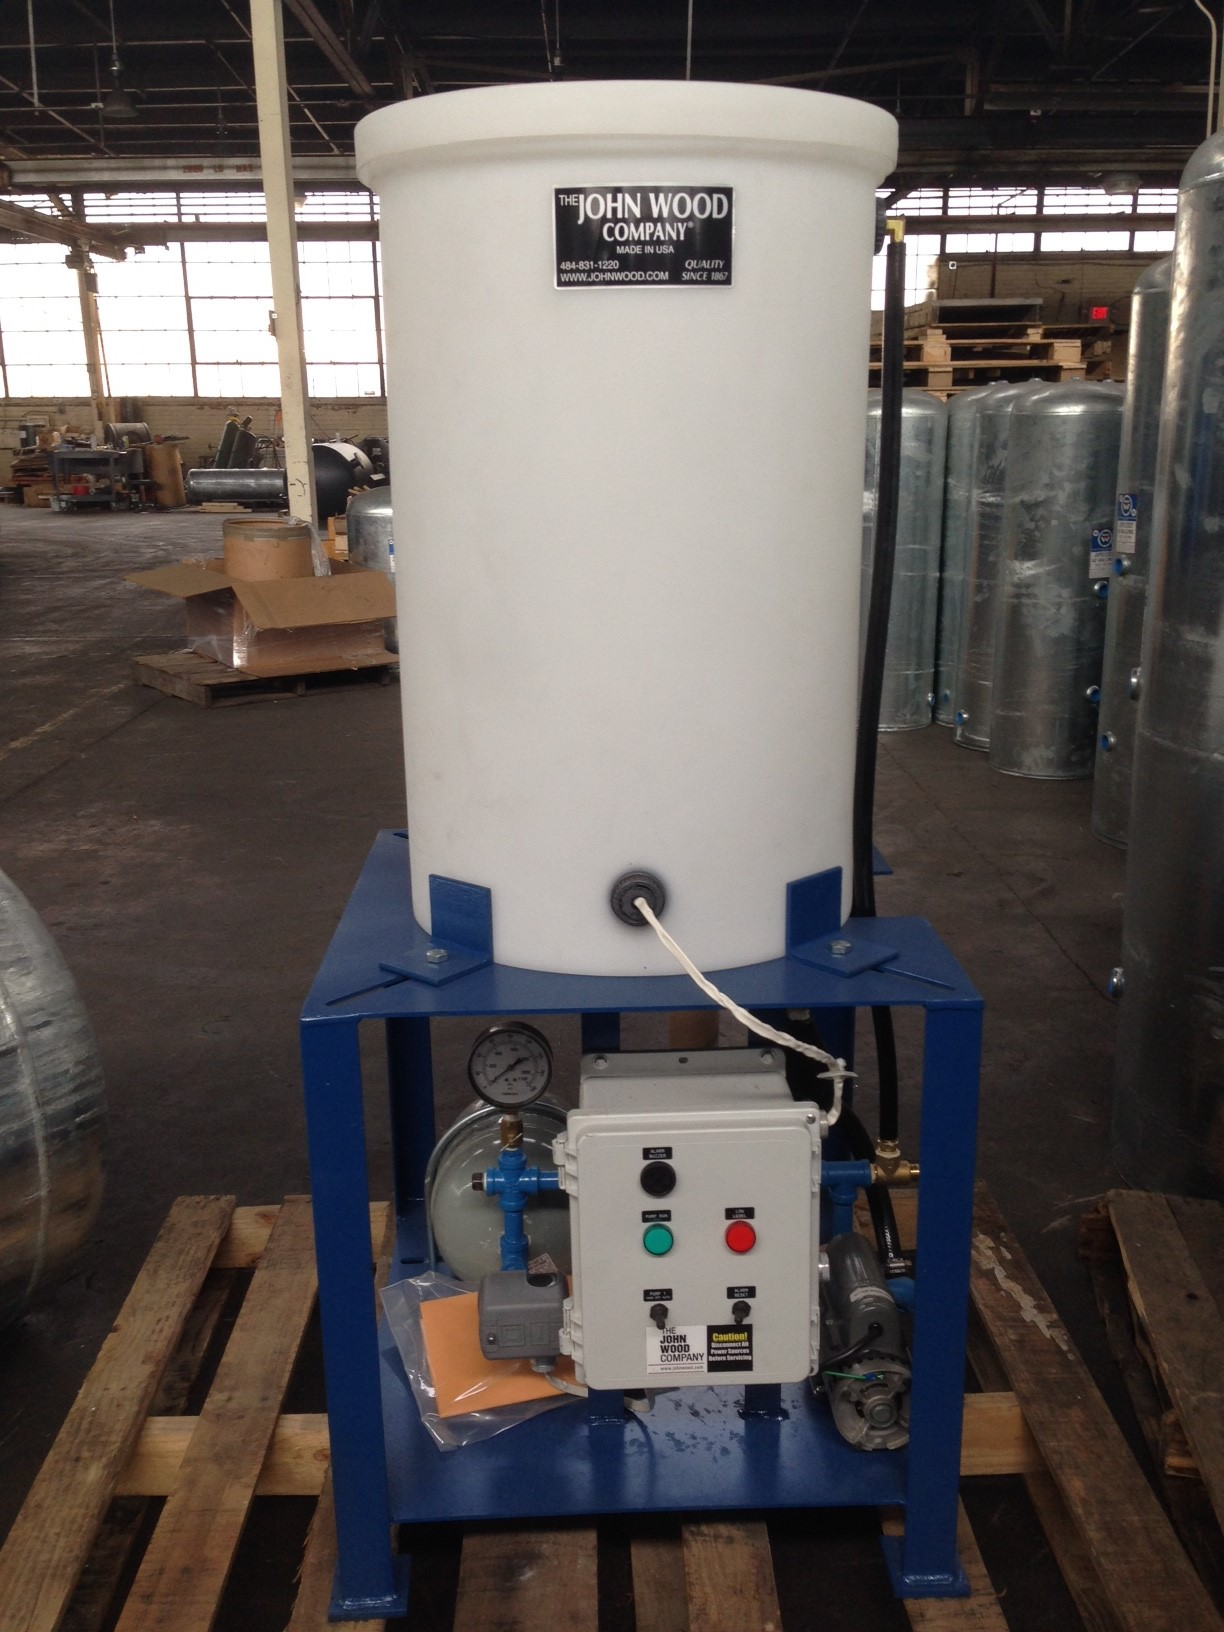 The John Wood Company Glycol Make Up Units The John Wood